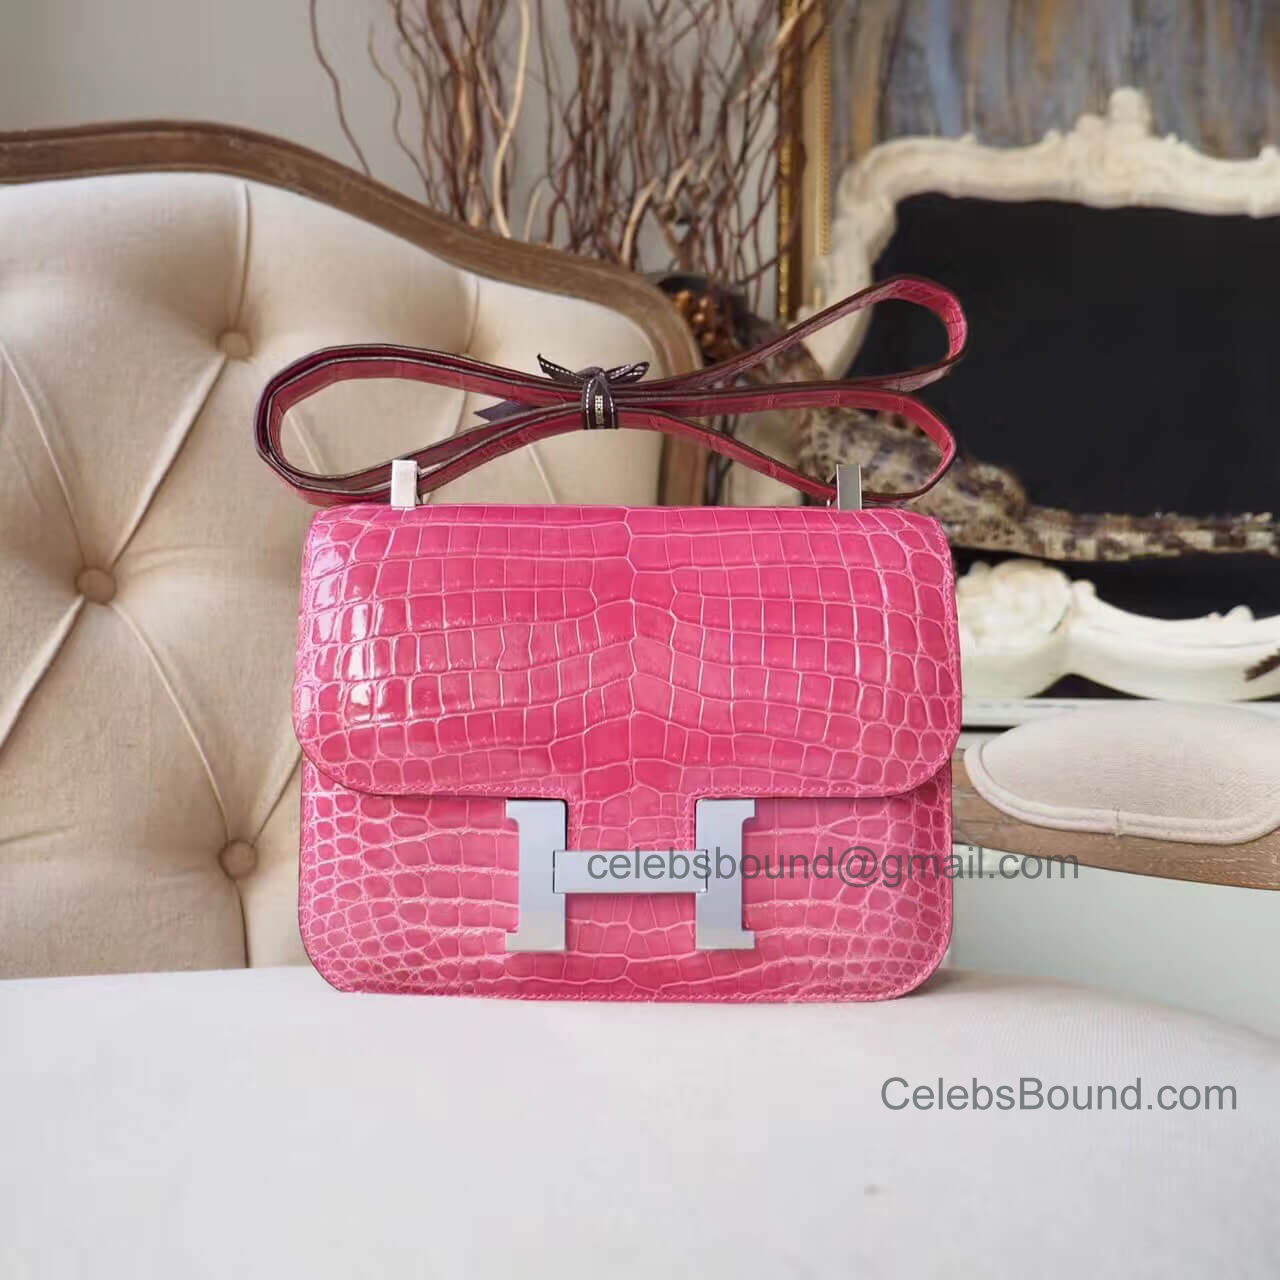 Replica Hermes Constance 23 Bag in e5 Rose Tyrien Shiny Nile Croc PHW